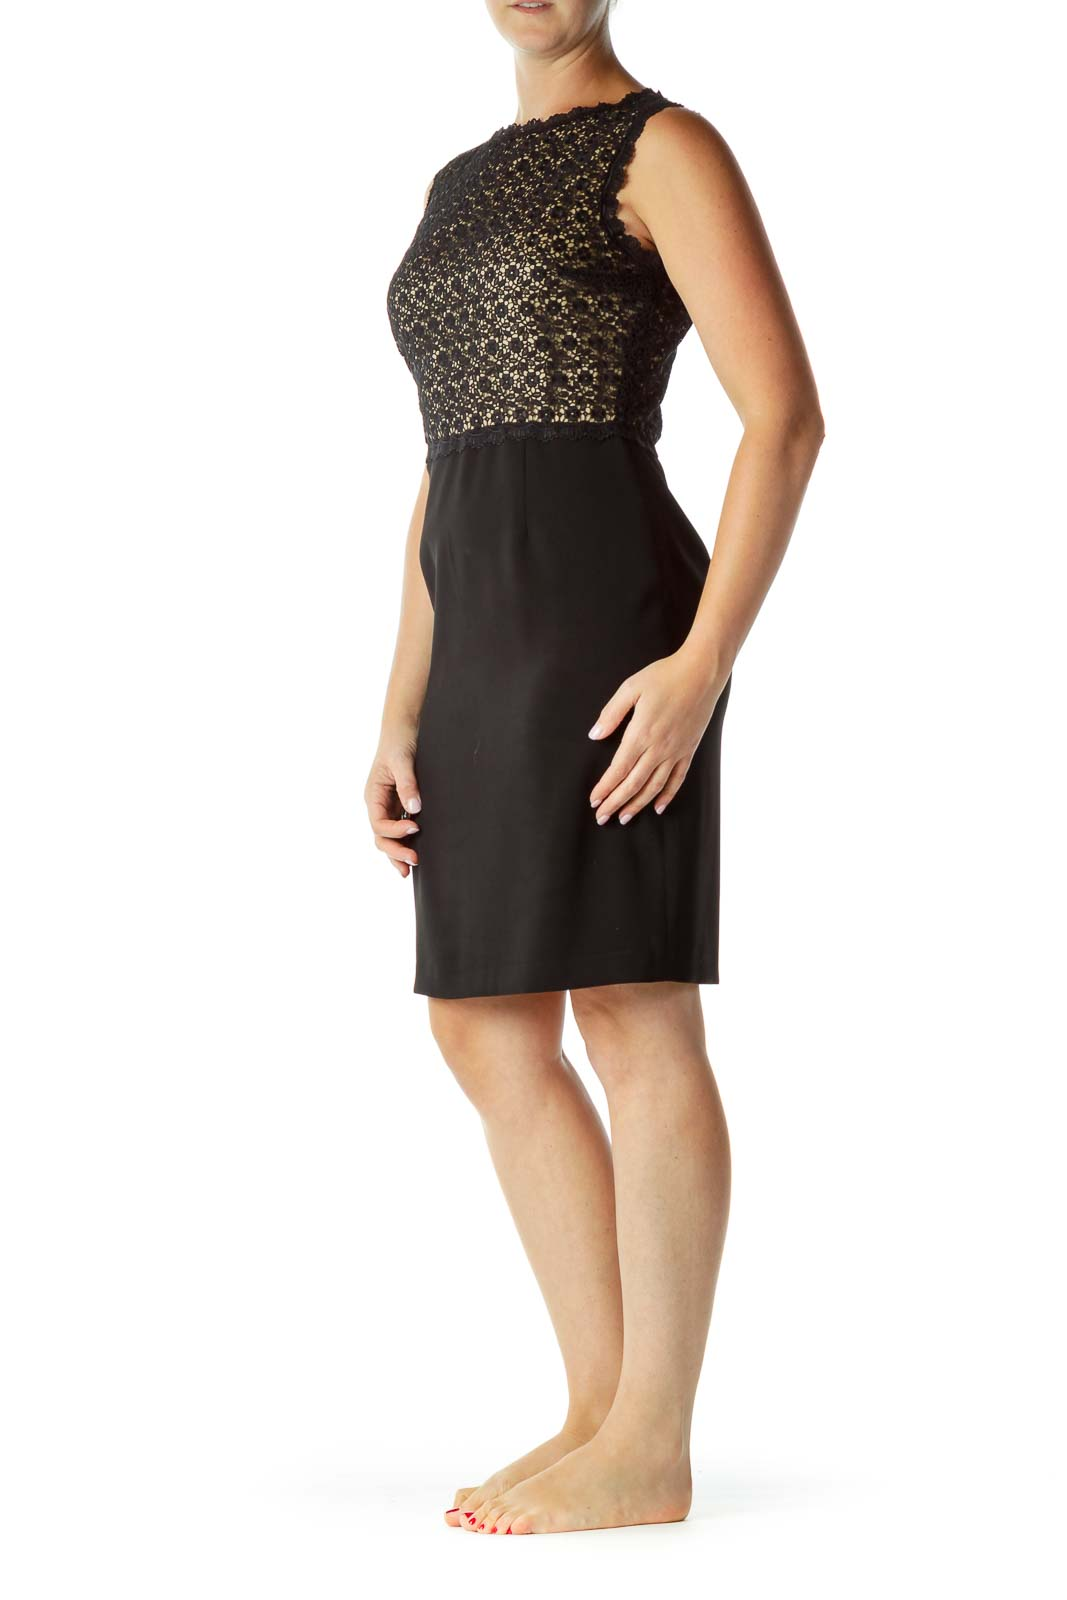 Black Beige Lace Top Cocktail Dress